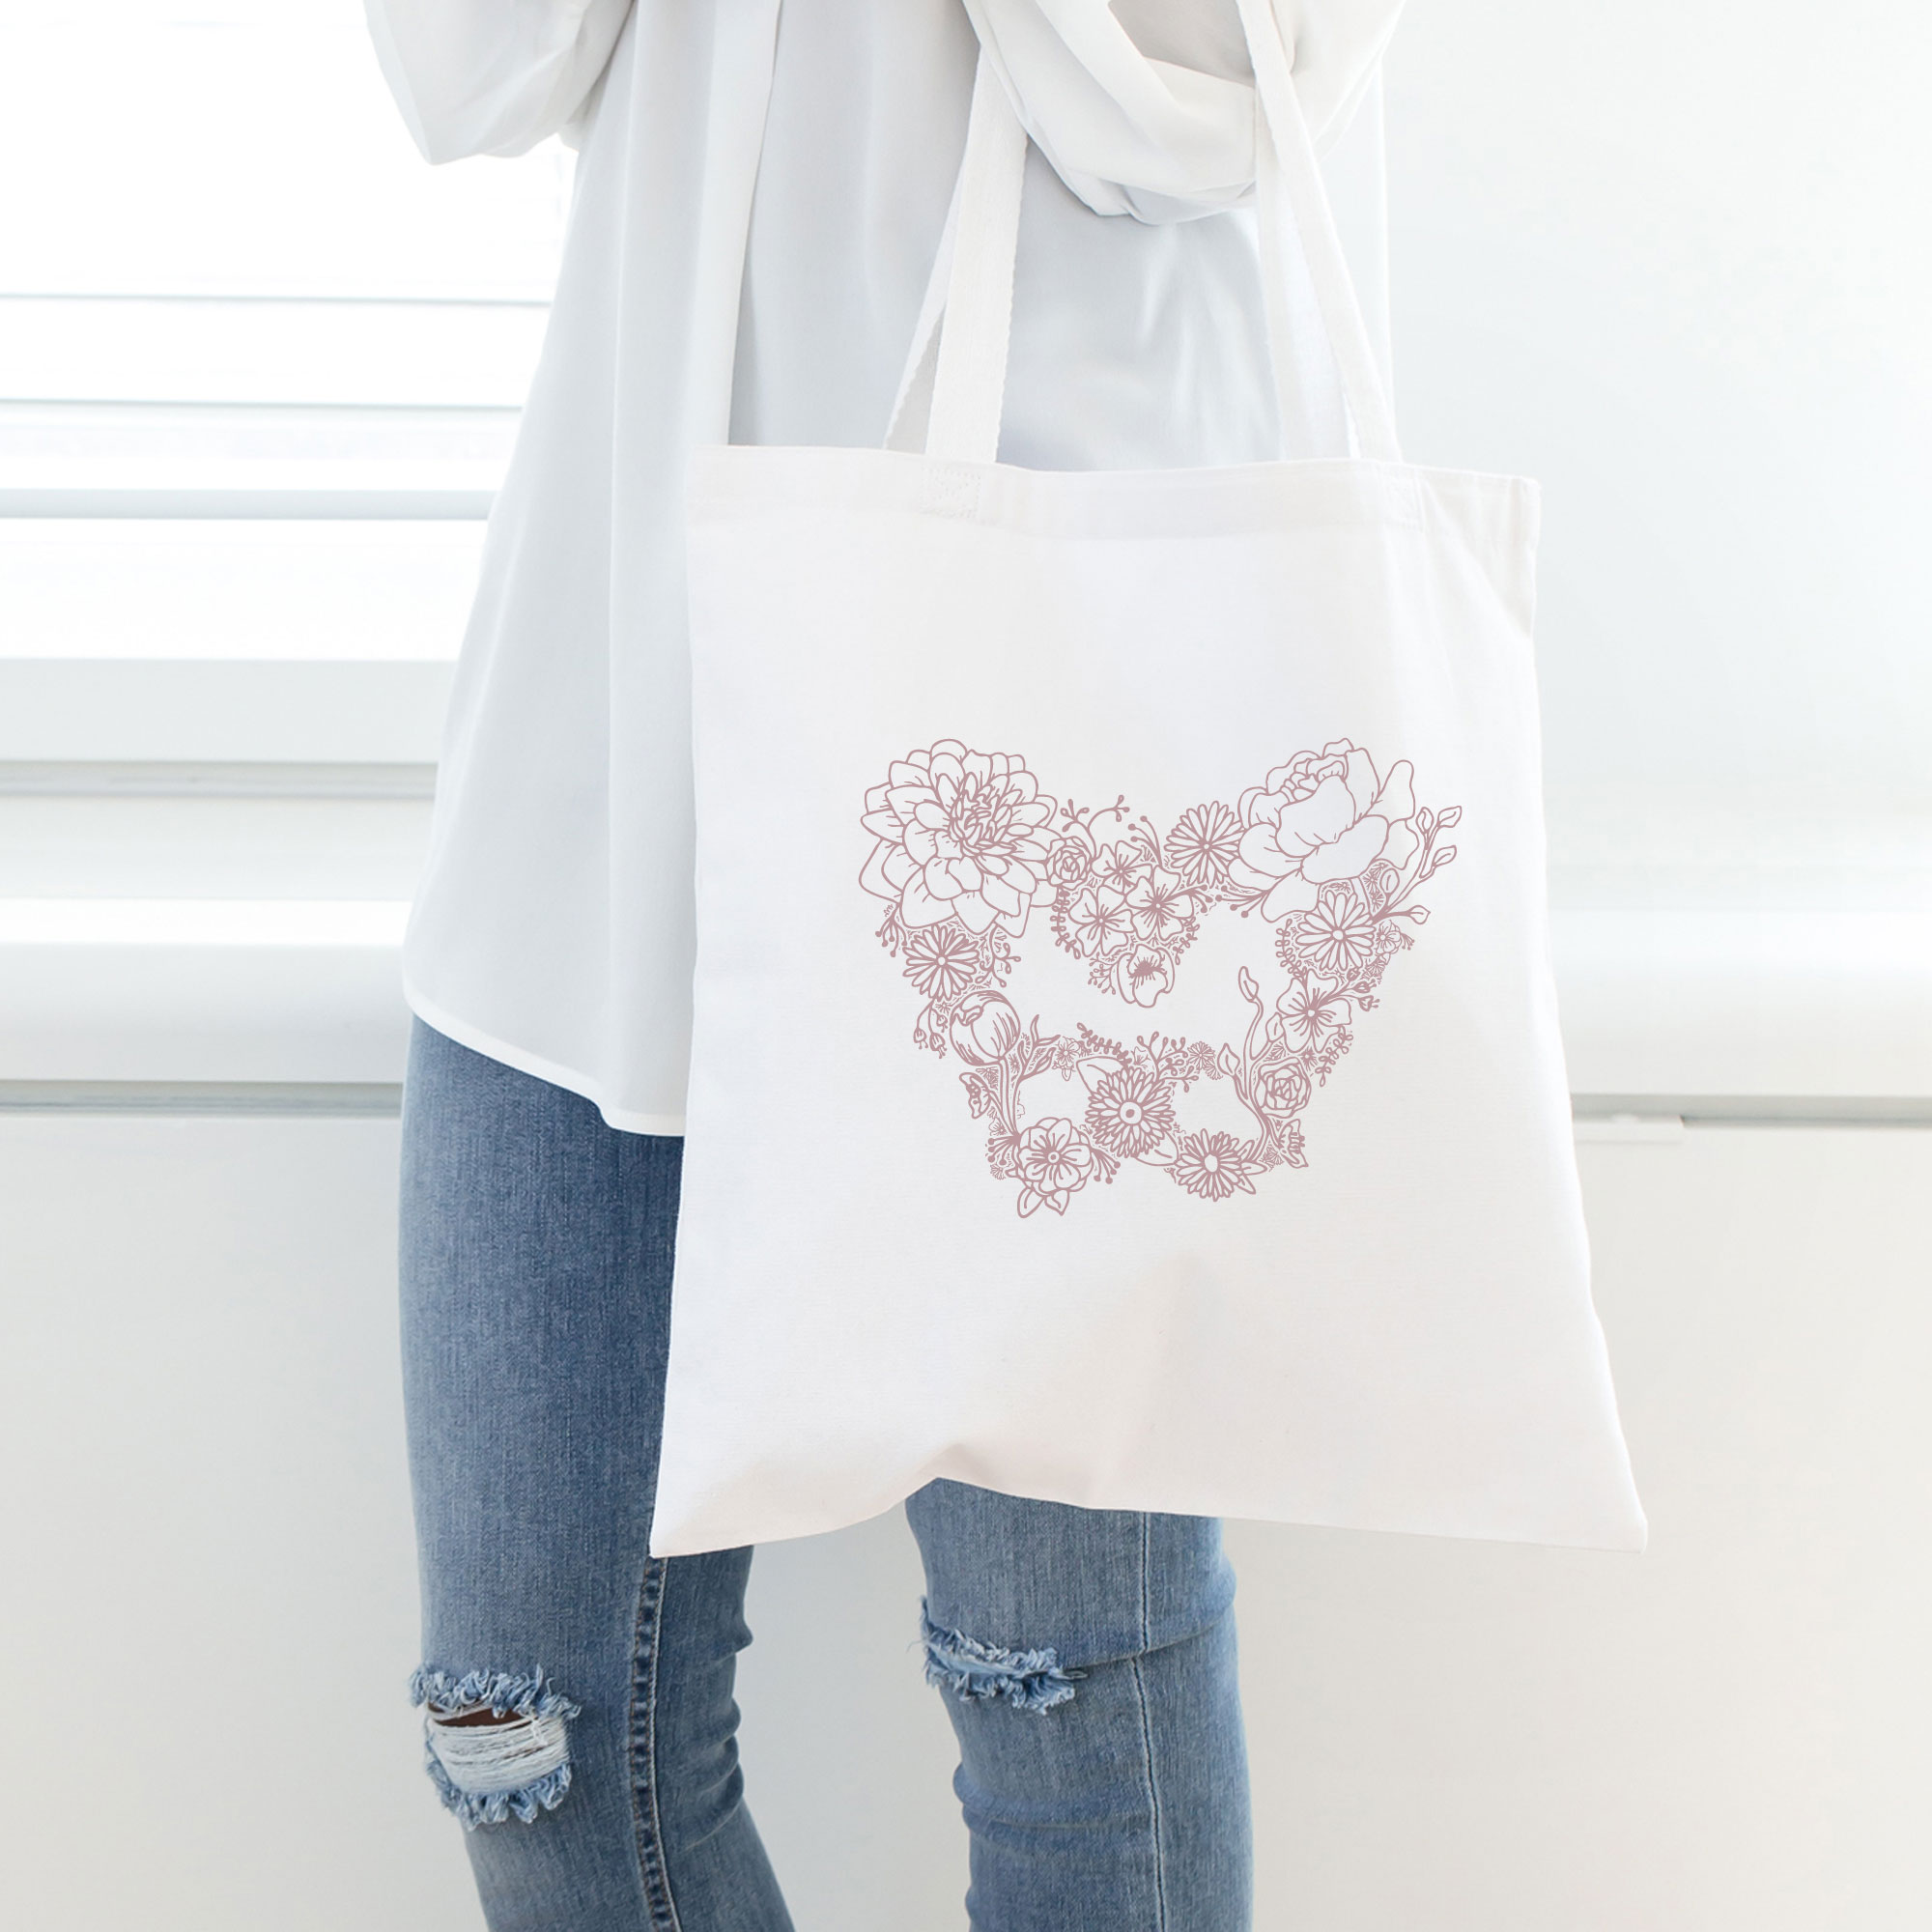 She Blooms Floral Pelvis branding icon on tote bag